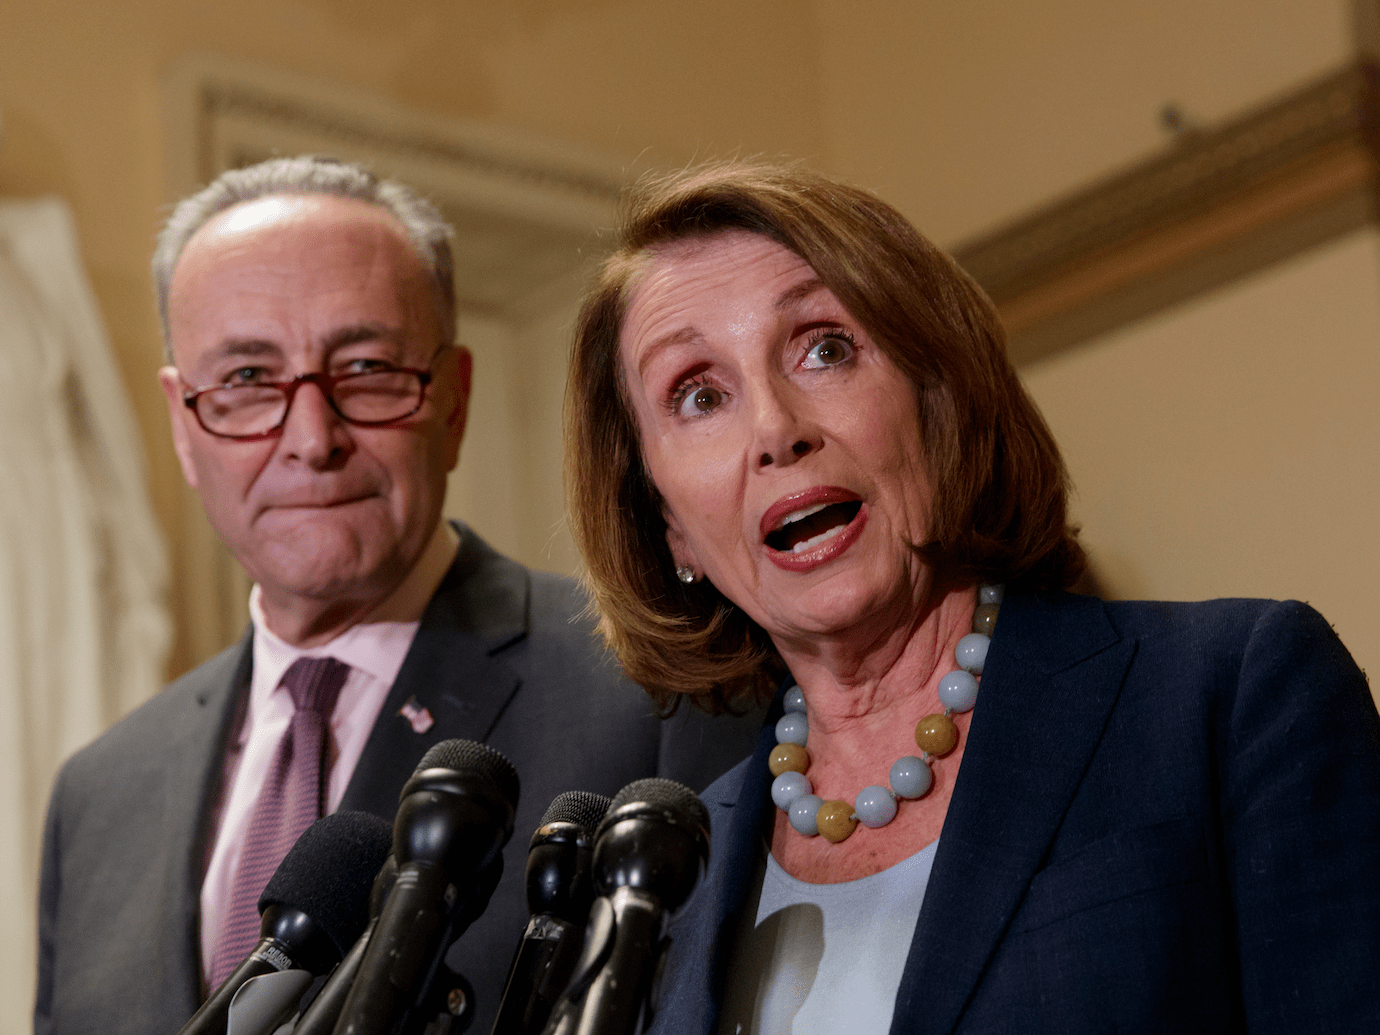 Image result for Chuck Schumer and Nancy Pelosi dancing